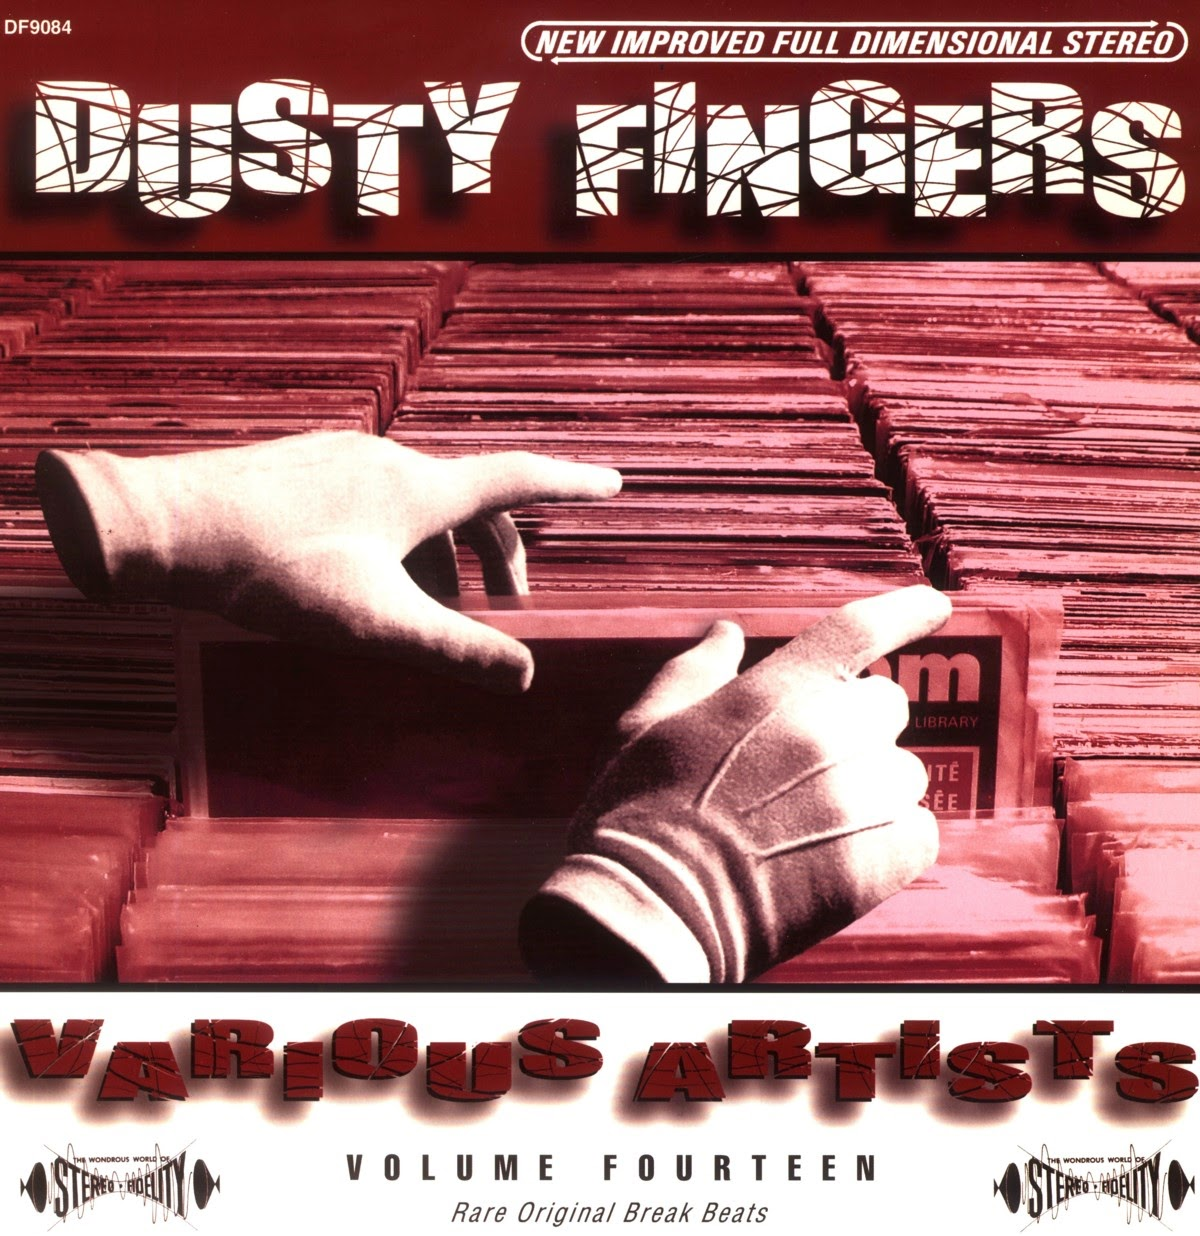 dusty fingers vol 14